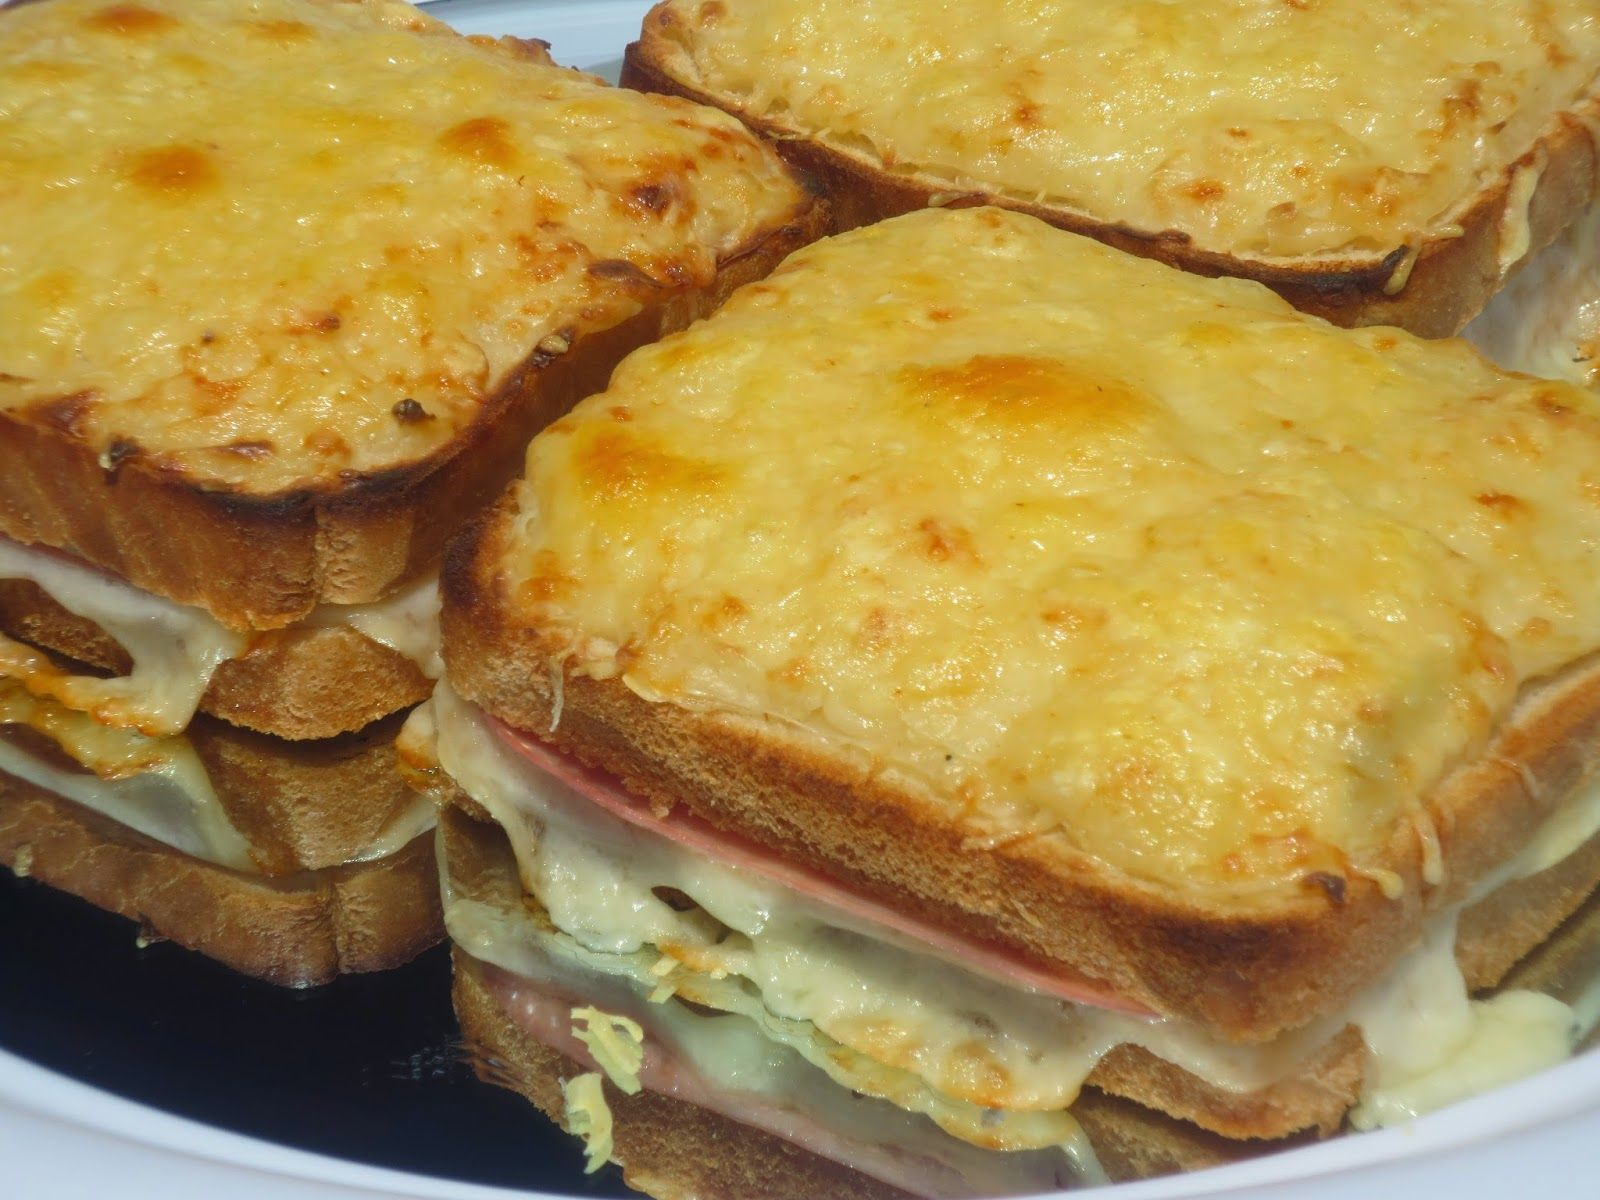 sandwich croque monsieur ana sevilla con thermomix. Black Bedroom Furniture Sets. Home Design Ideas